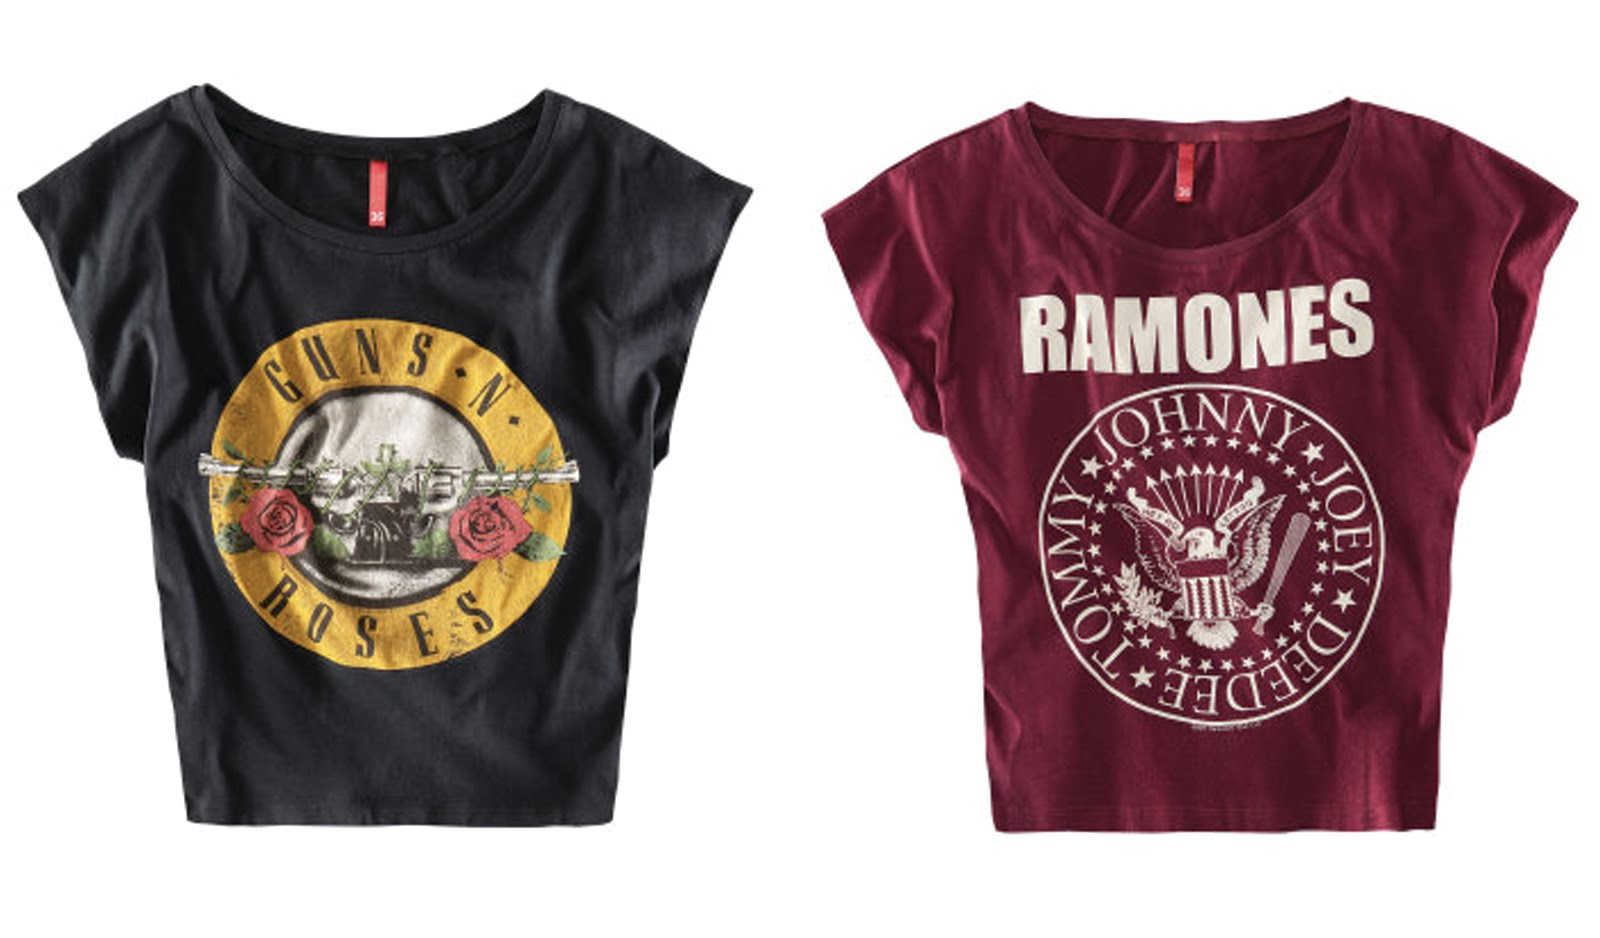 Find and share band t-shirts coupon codes and promo codes for great discounts at thousands of online stores.